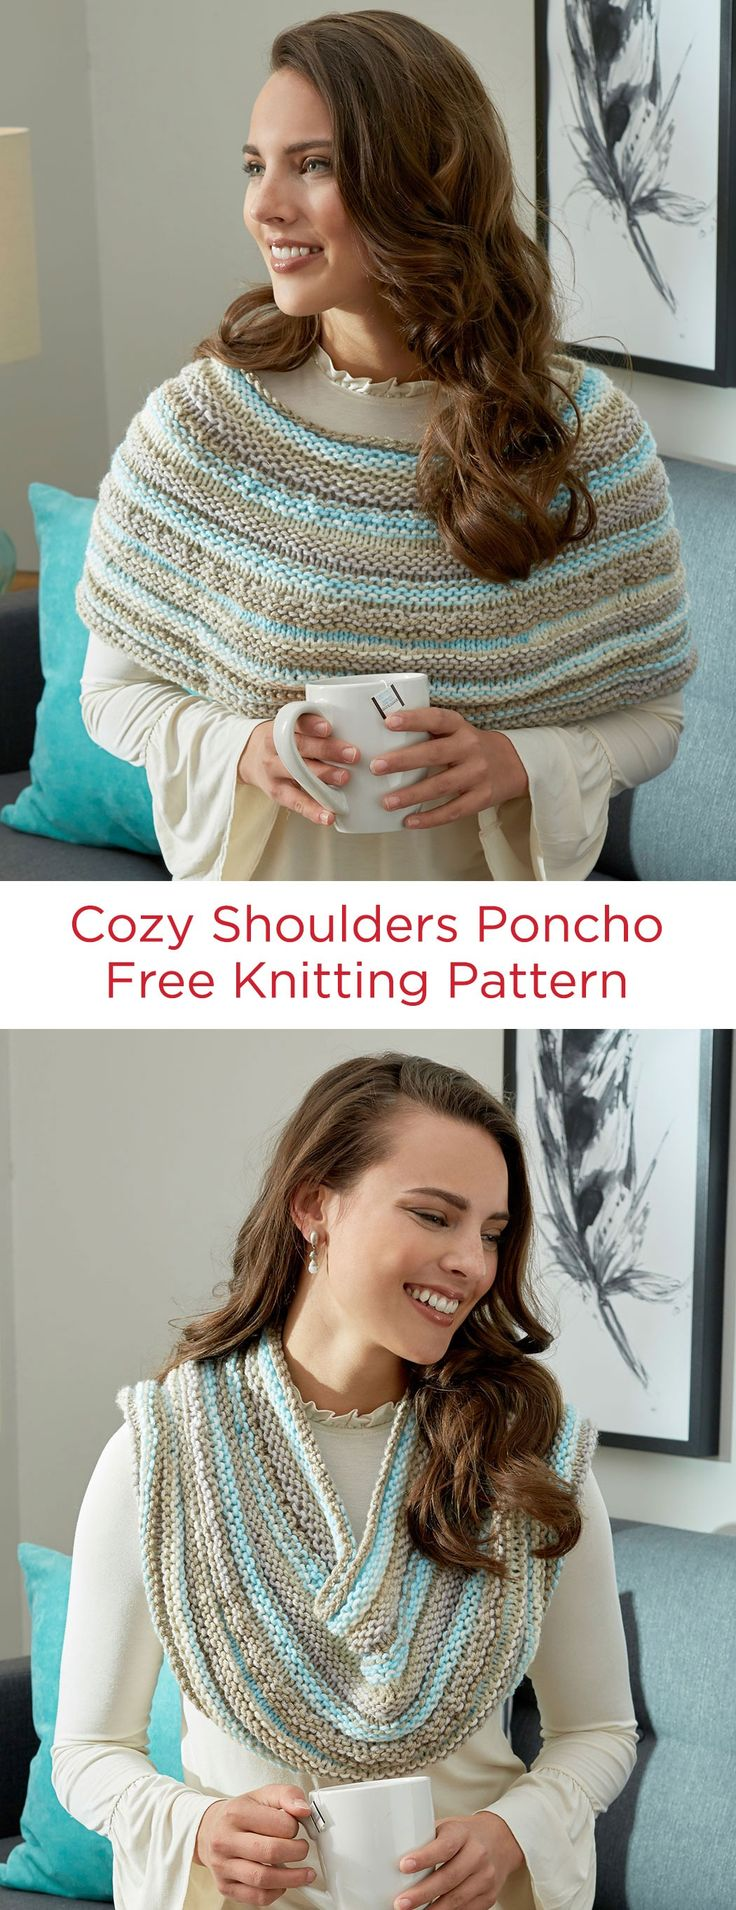 Cozy Shoulders Poncho Free Knitting Pattern in Red Heart With Love Stripes yarn -- Wear this poncho around your shoulders, or up around your neck like a cowl. Whichever way you wear it, you'll look great!